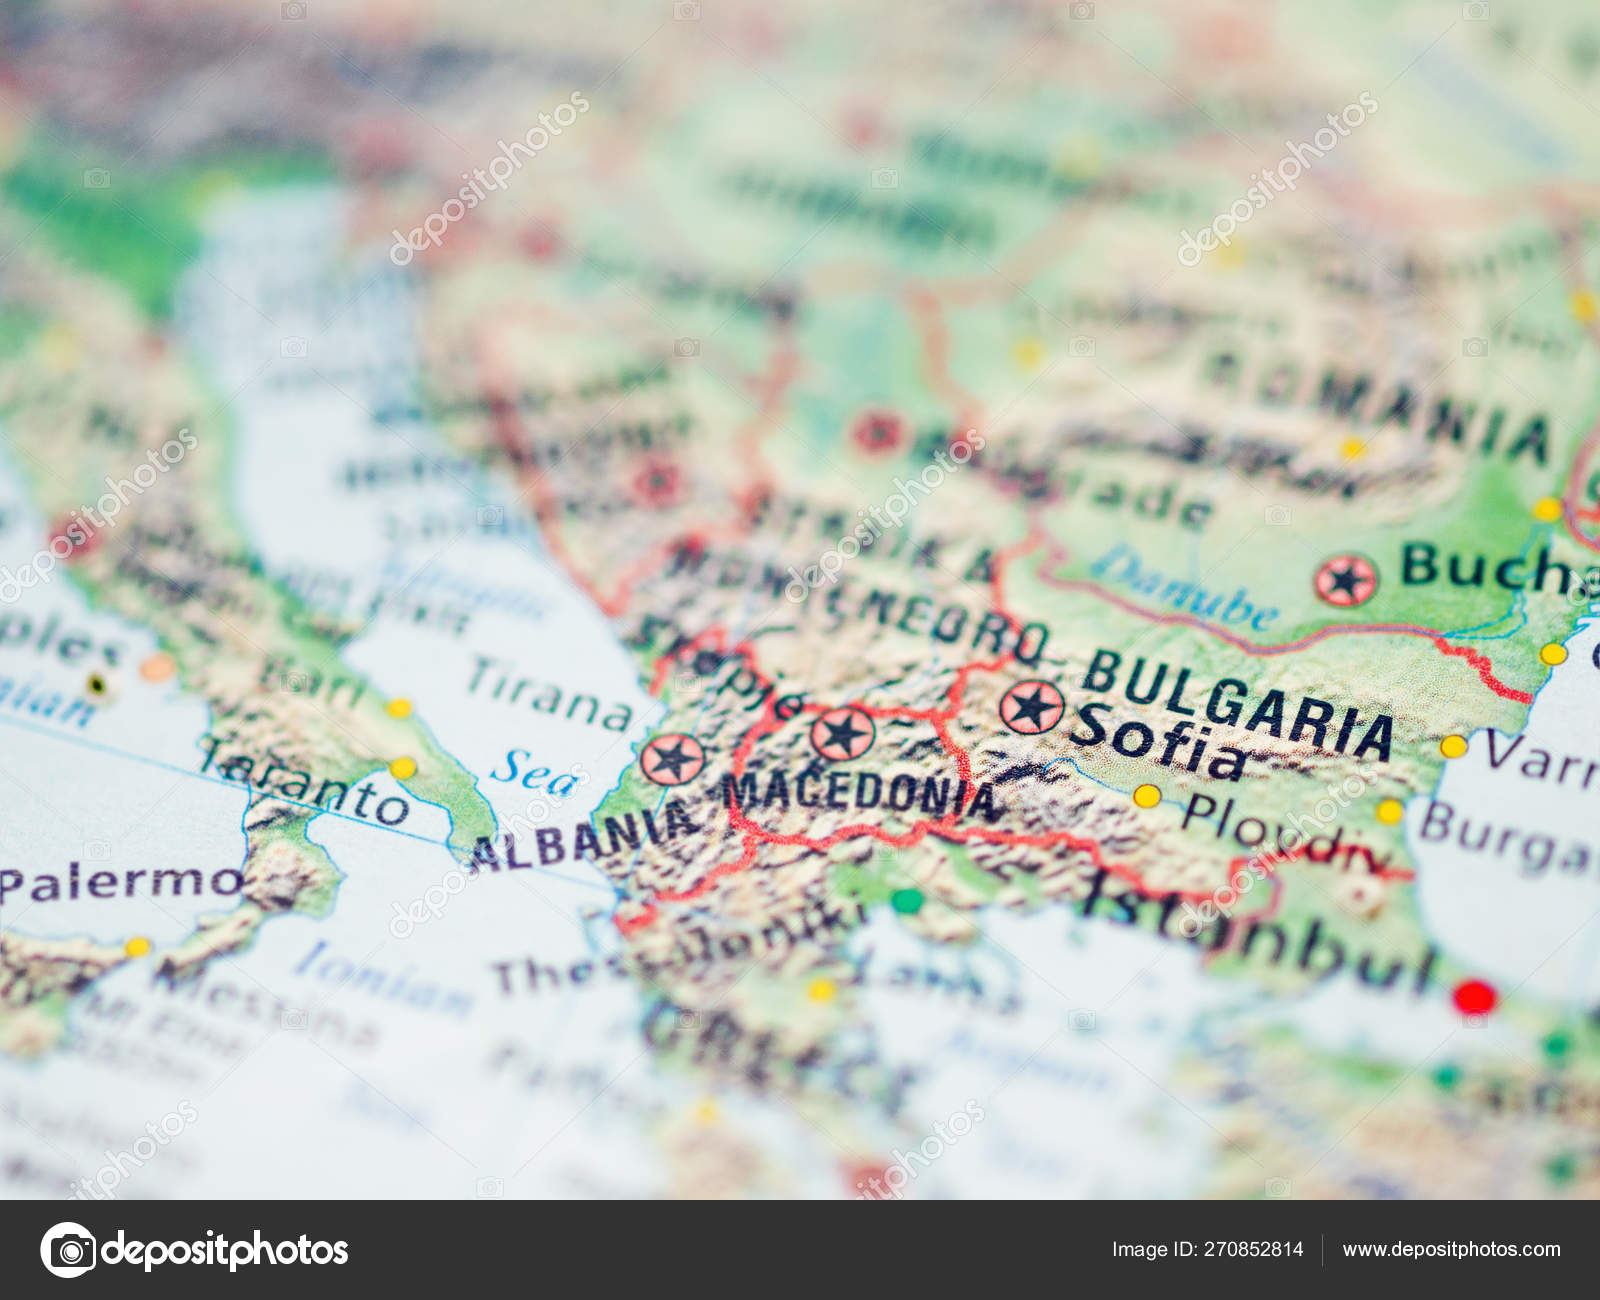 Picture of: World Map With Focus On Bulgaria Country With Capital City Sofia Stock Photo C Aksenovko 270852814